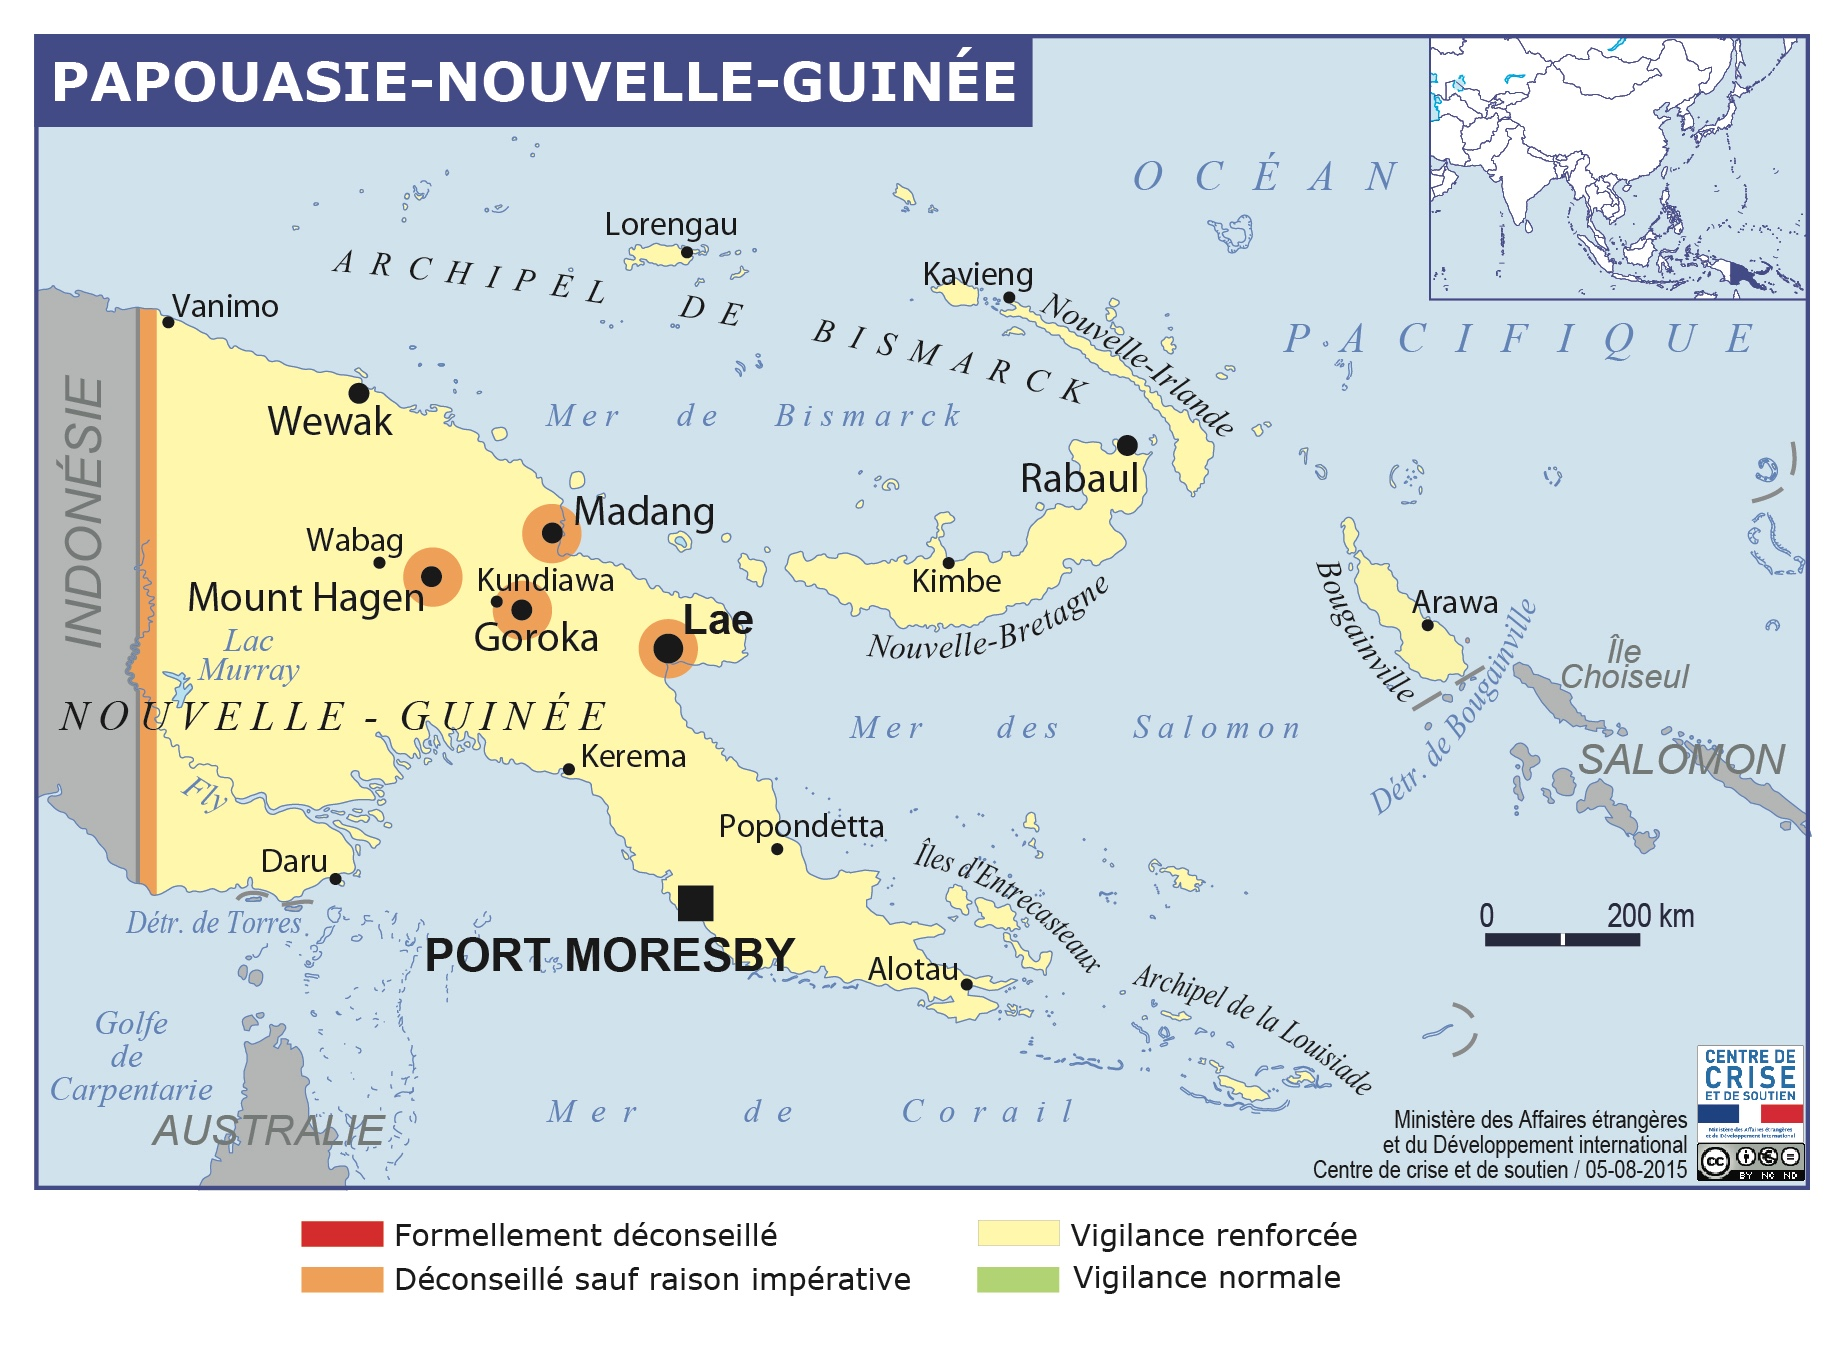 papouasie-nouvelle-guinee